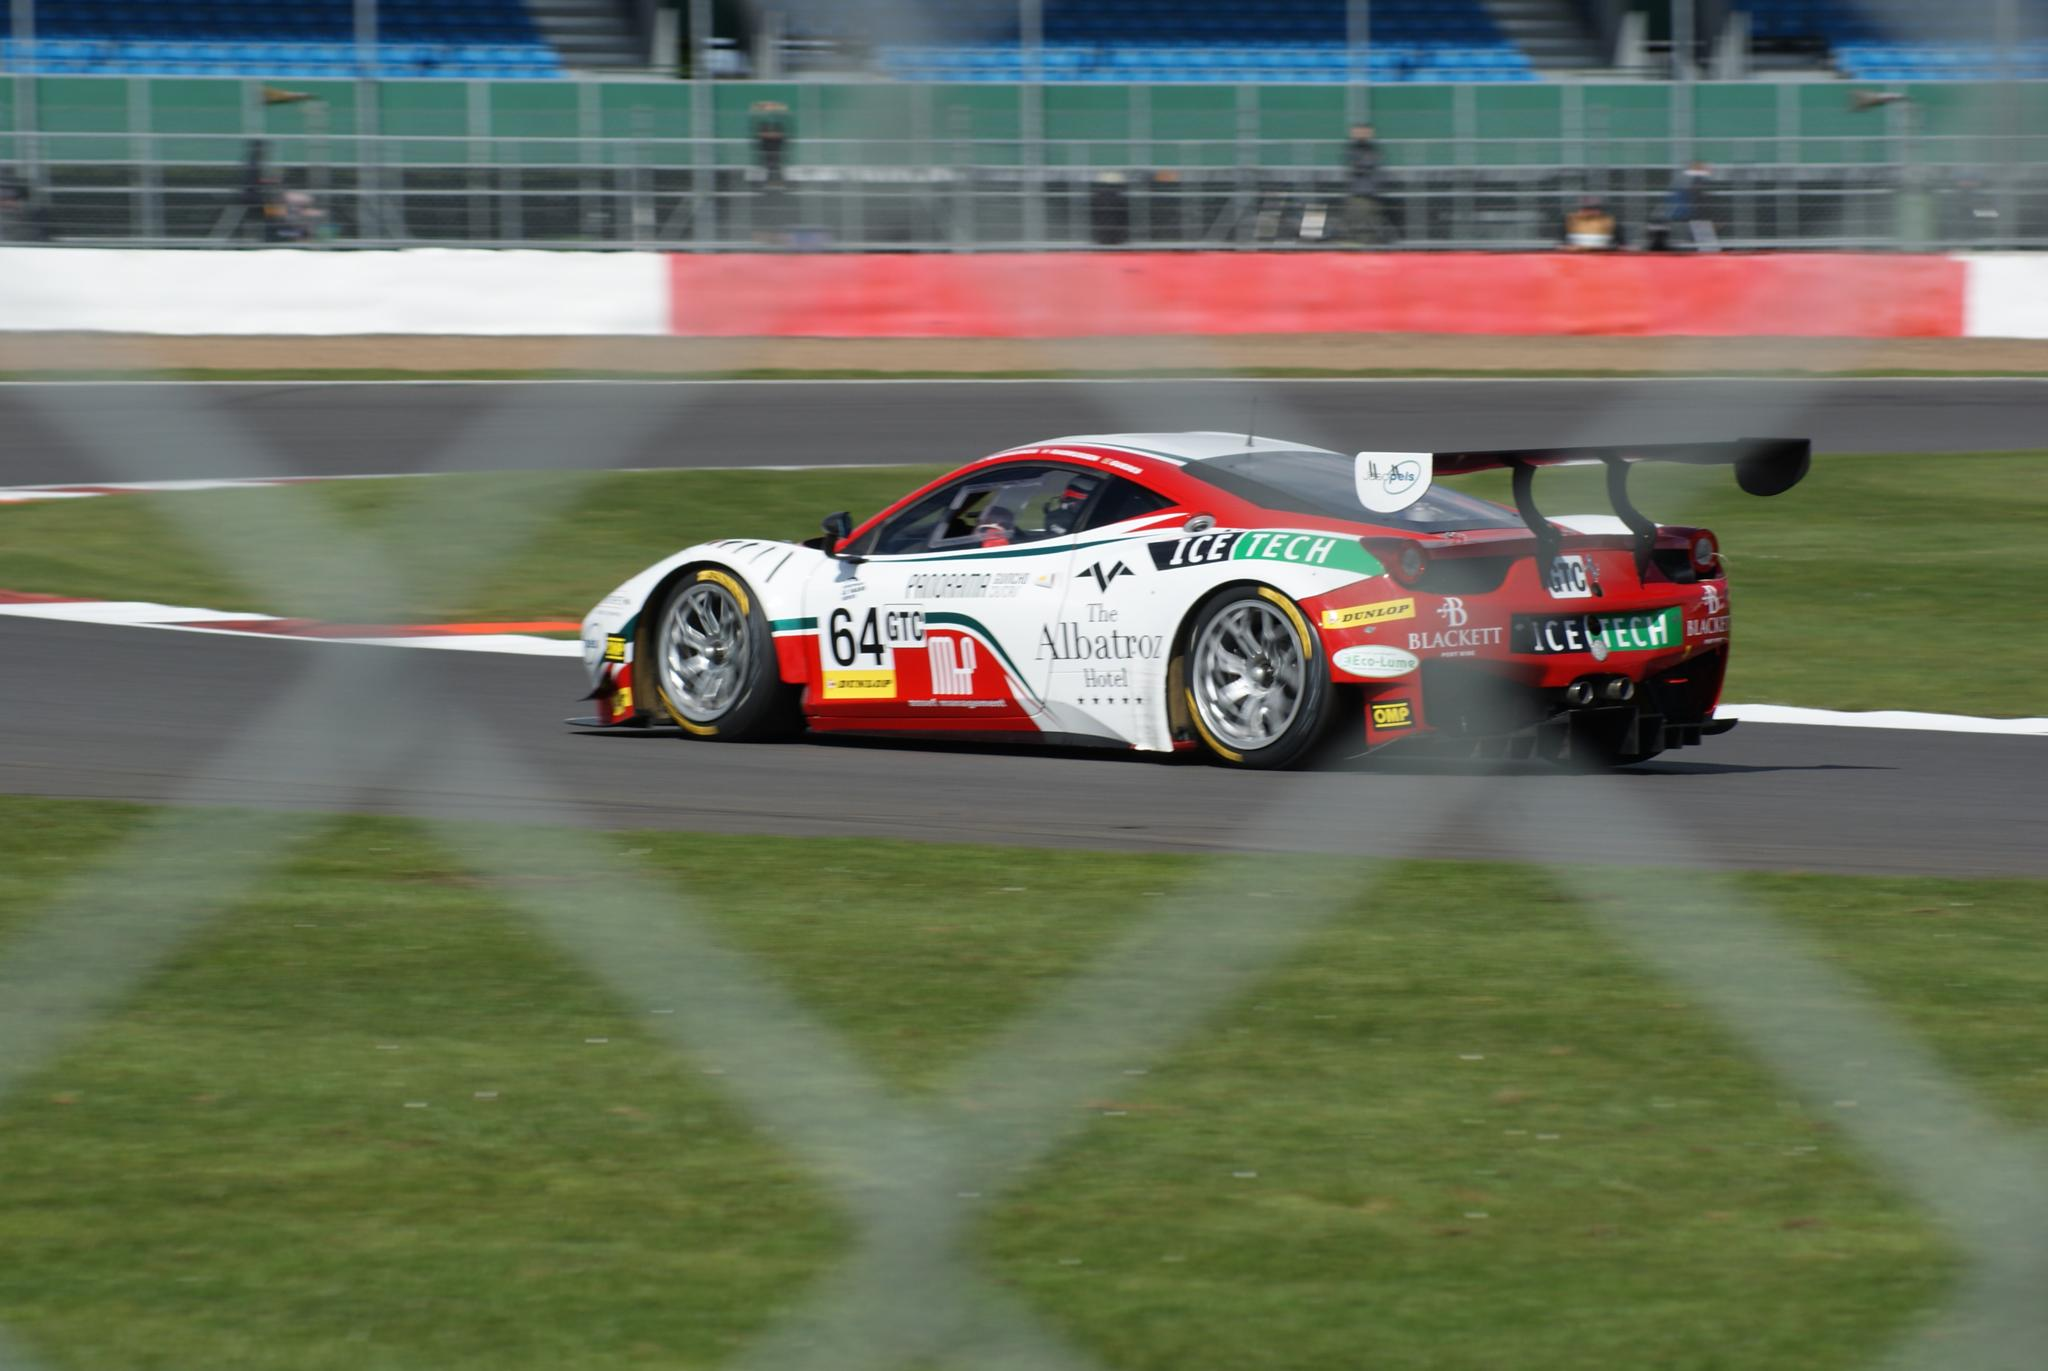 Day at silverstone. by james.gallagher.52